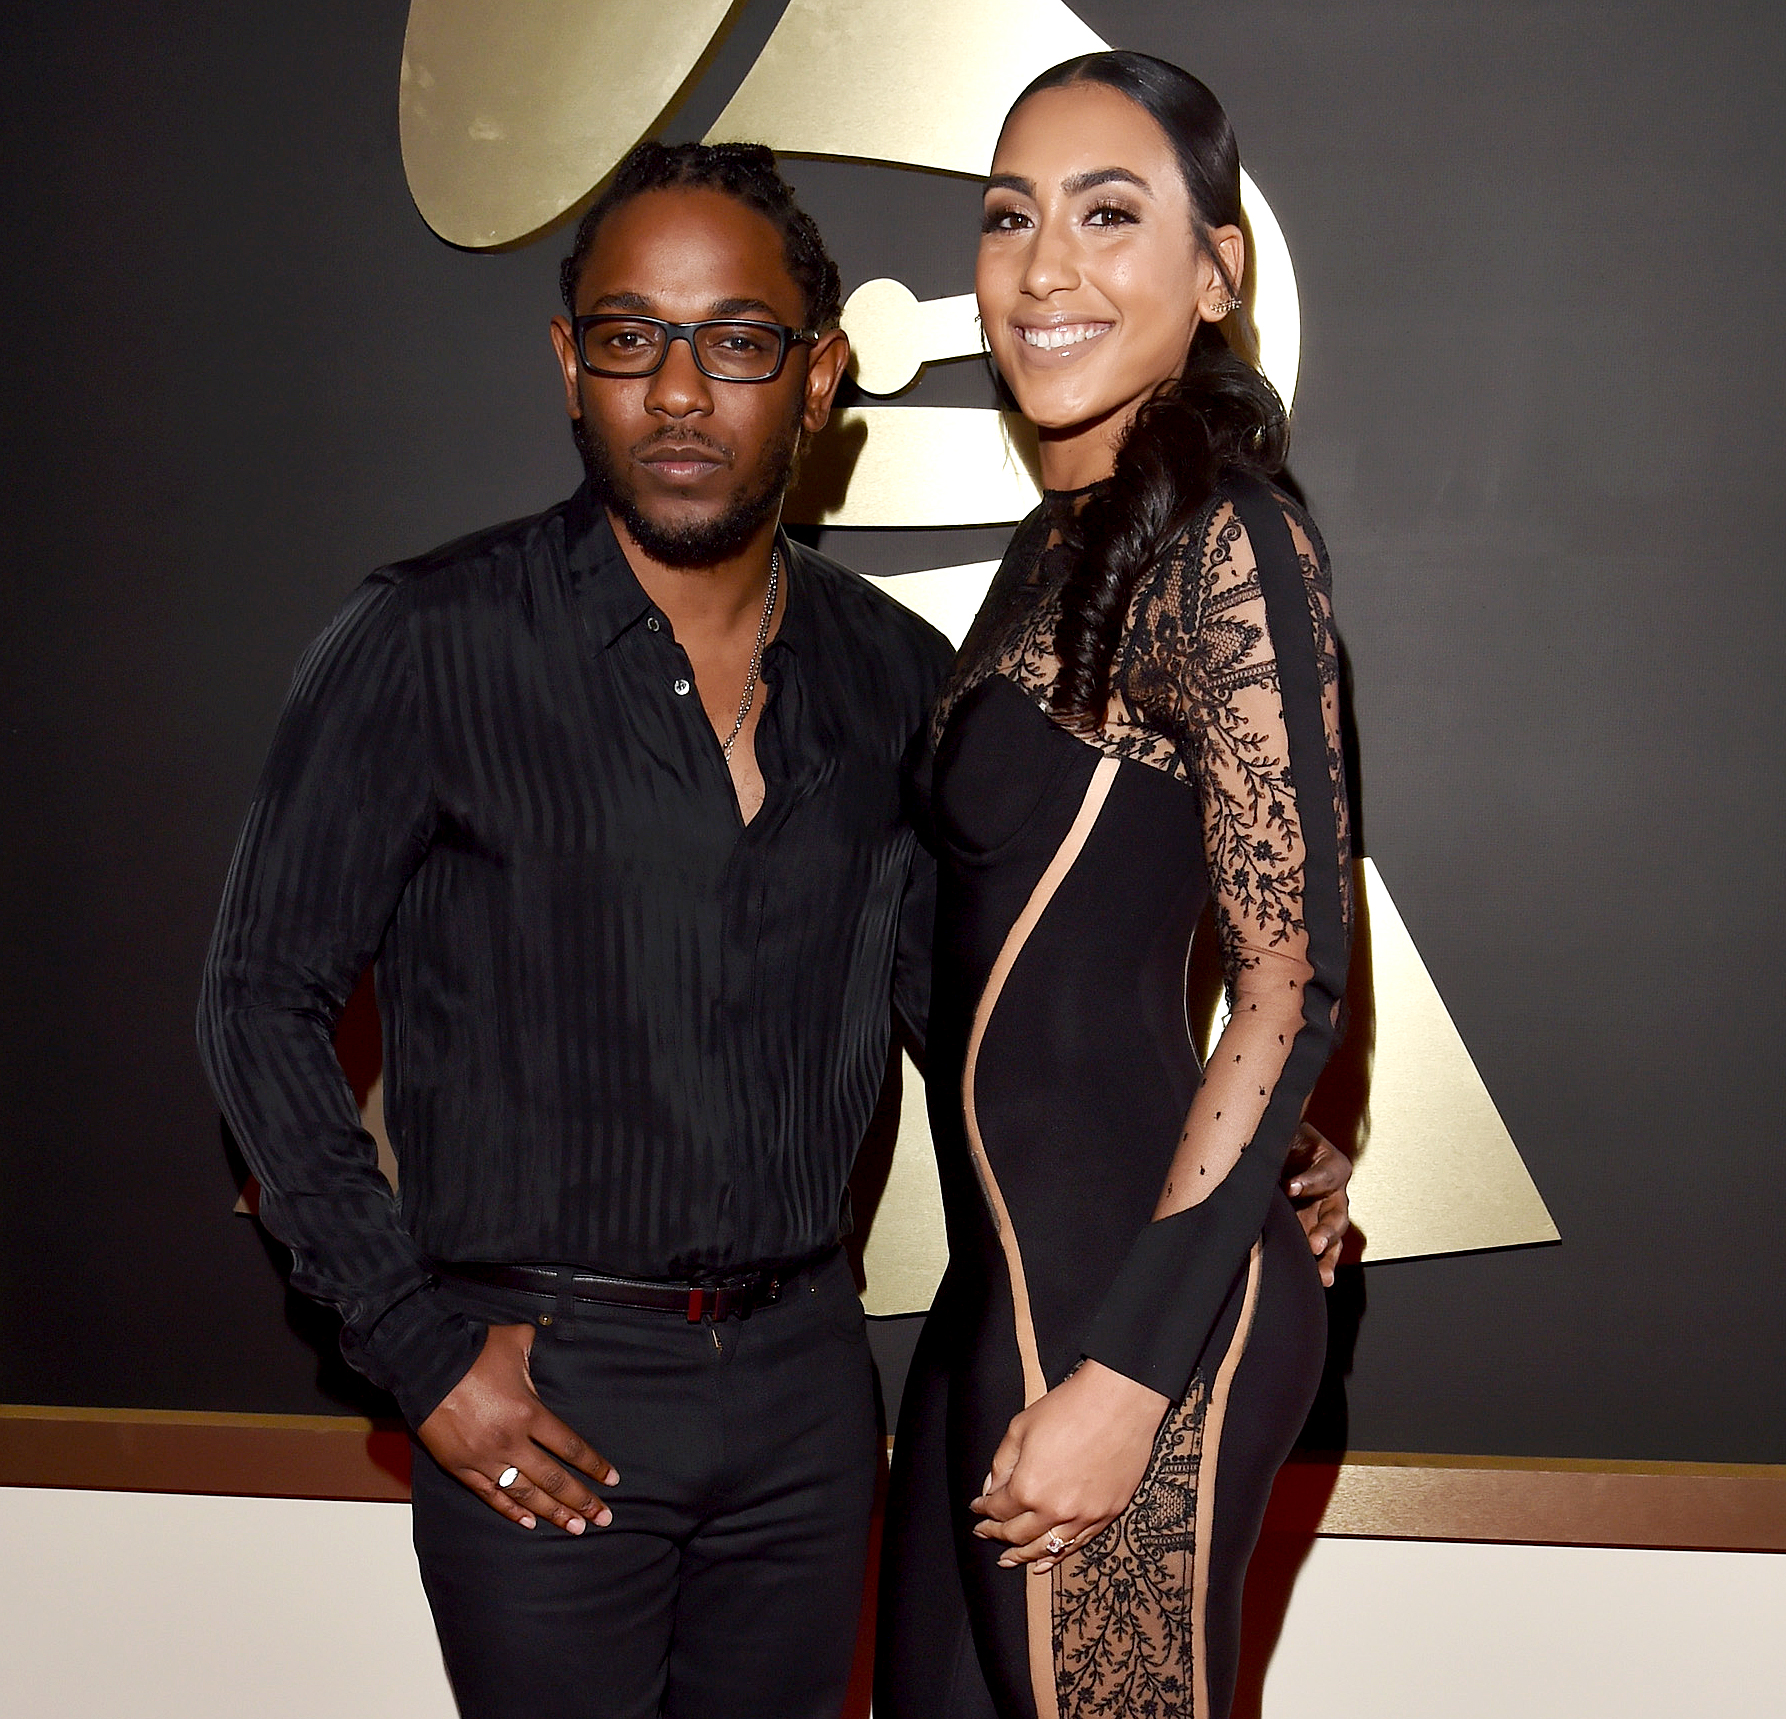 Kendrick Lamar Whitney Alford Welcome 1st Child What is lamar's net worth? kendrick lamar whitney alford welcome